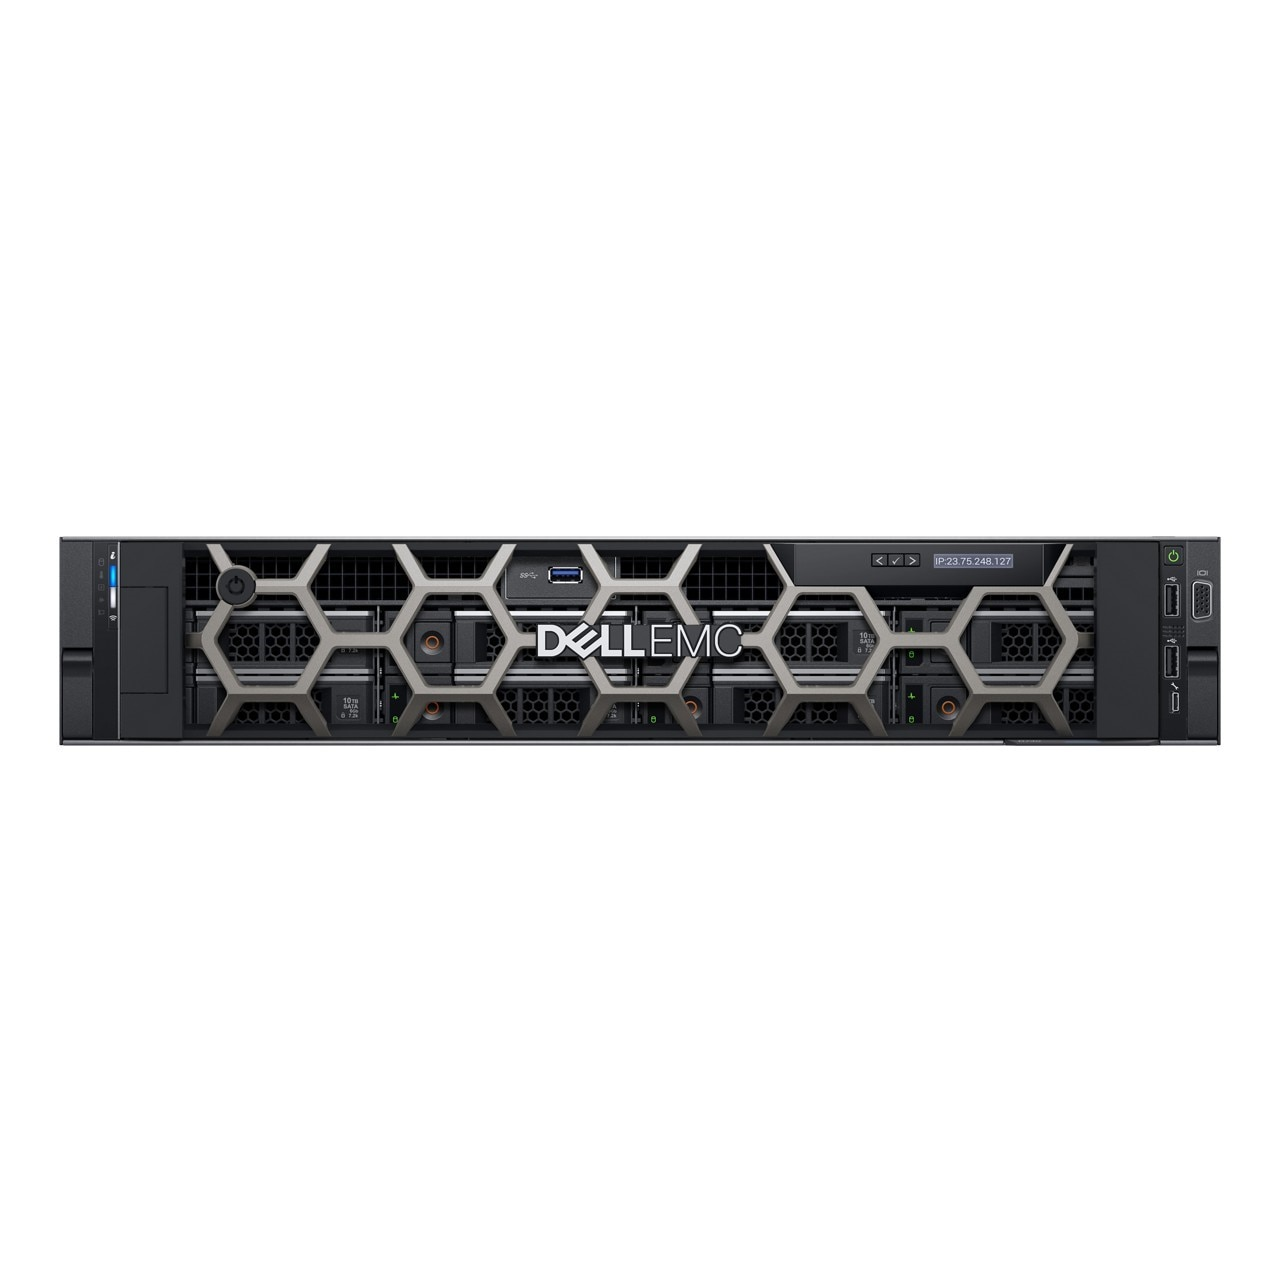 PowerEdge R740 Server